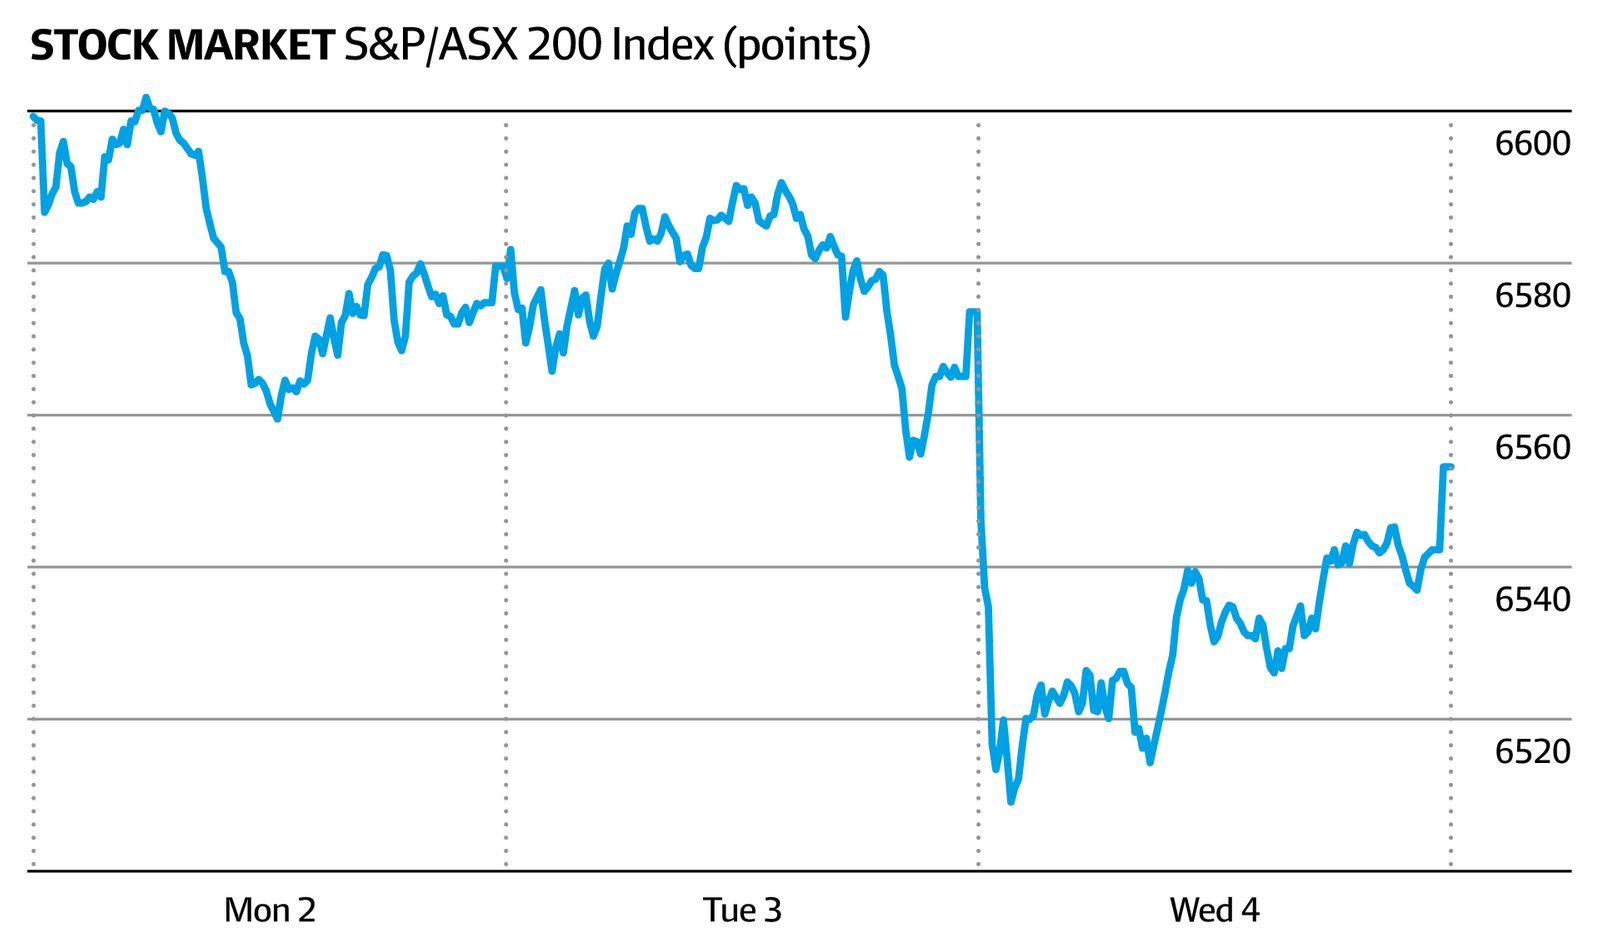 Stock market S&P/ASX 200 index (AFR)